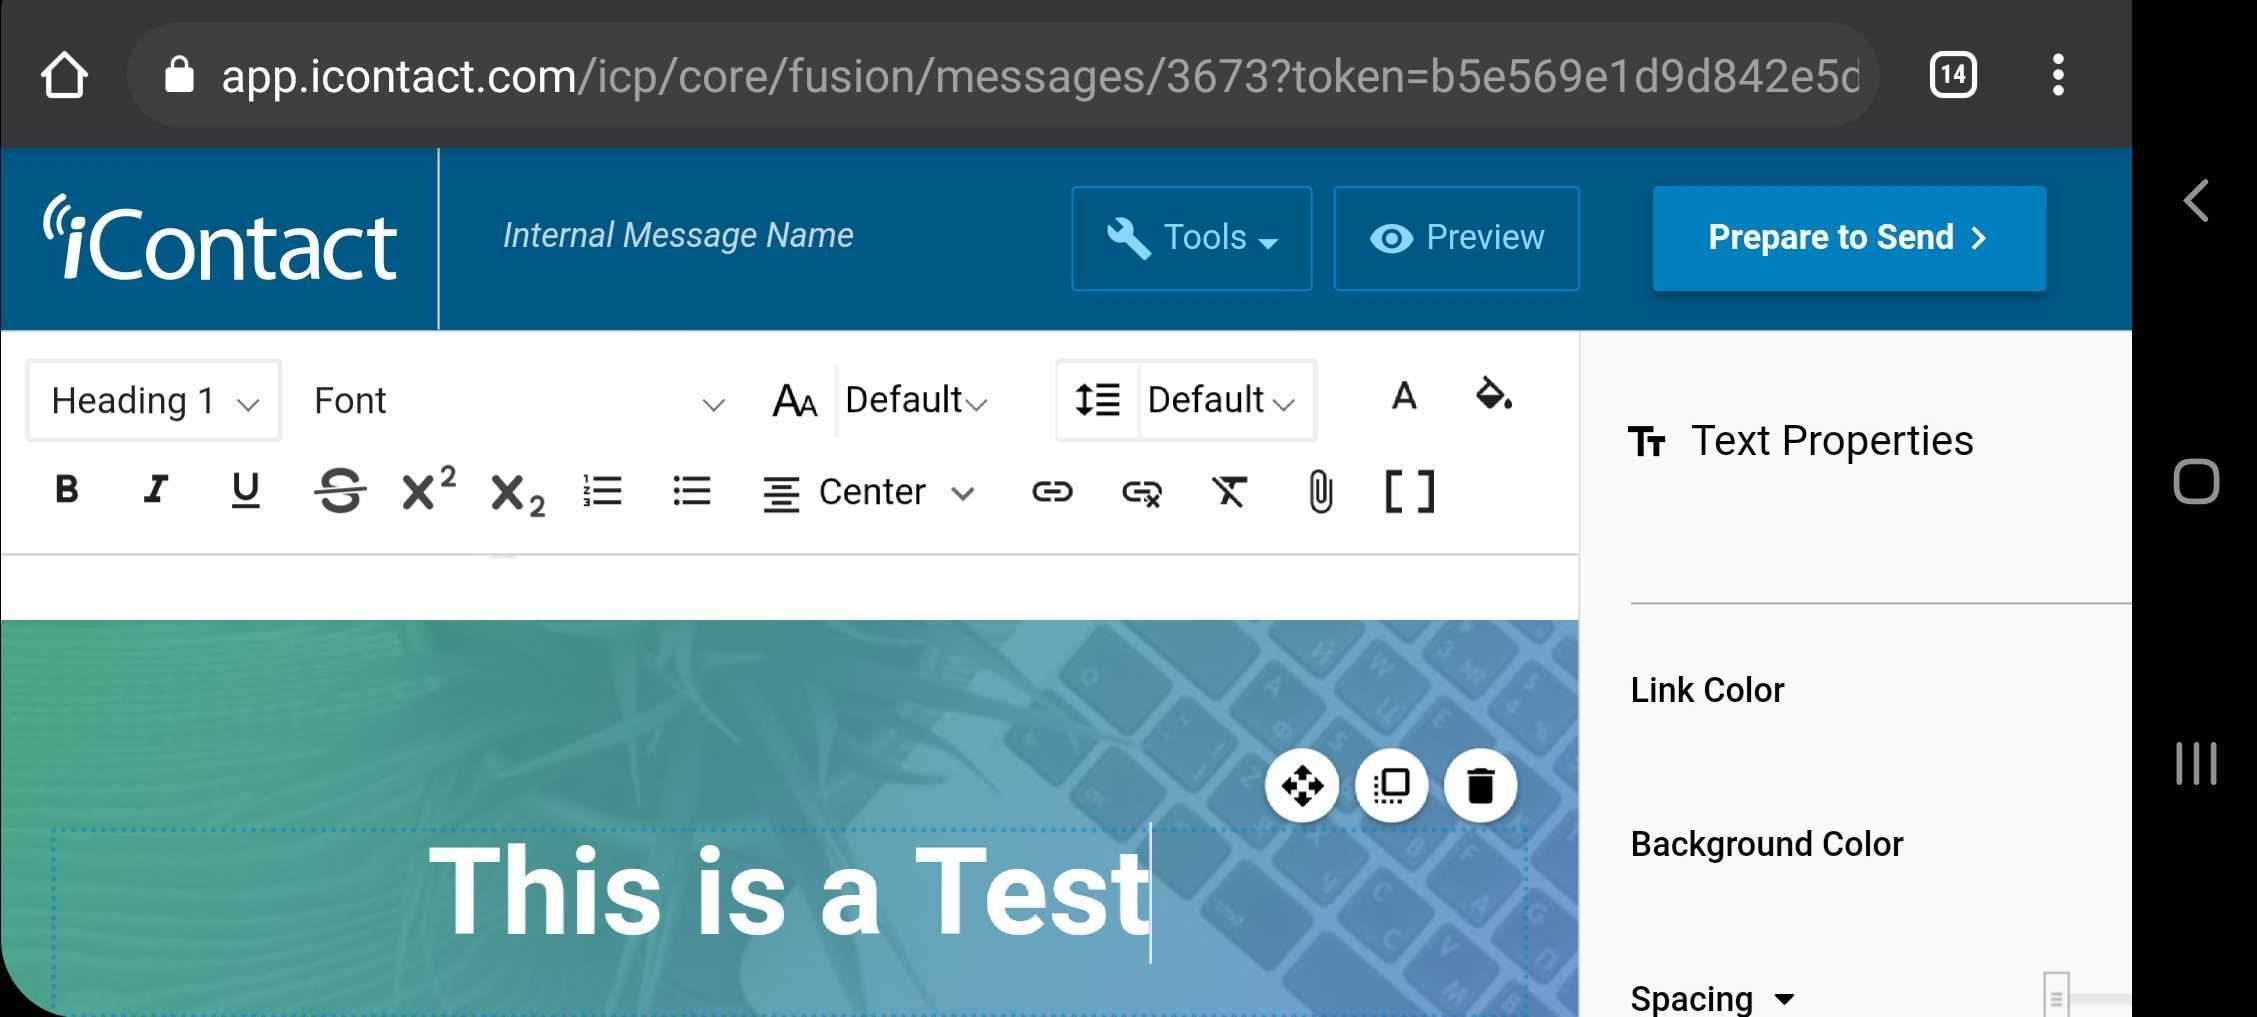 iContact email editor in mobile browser